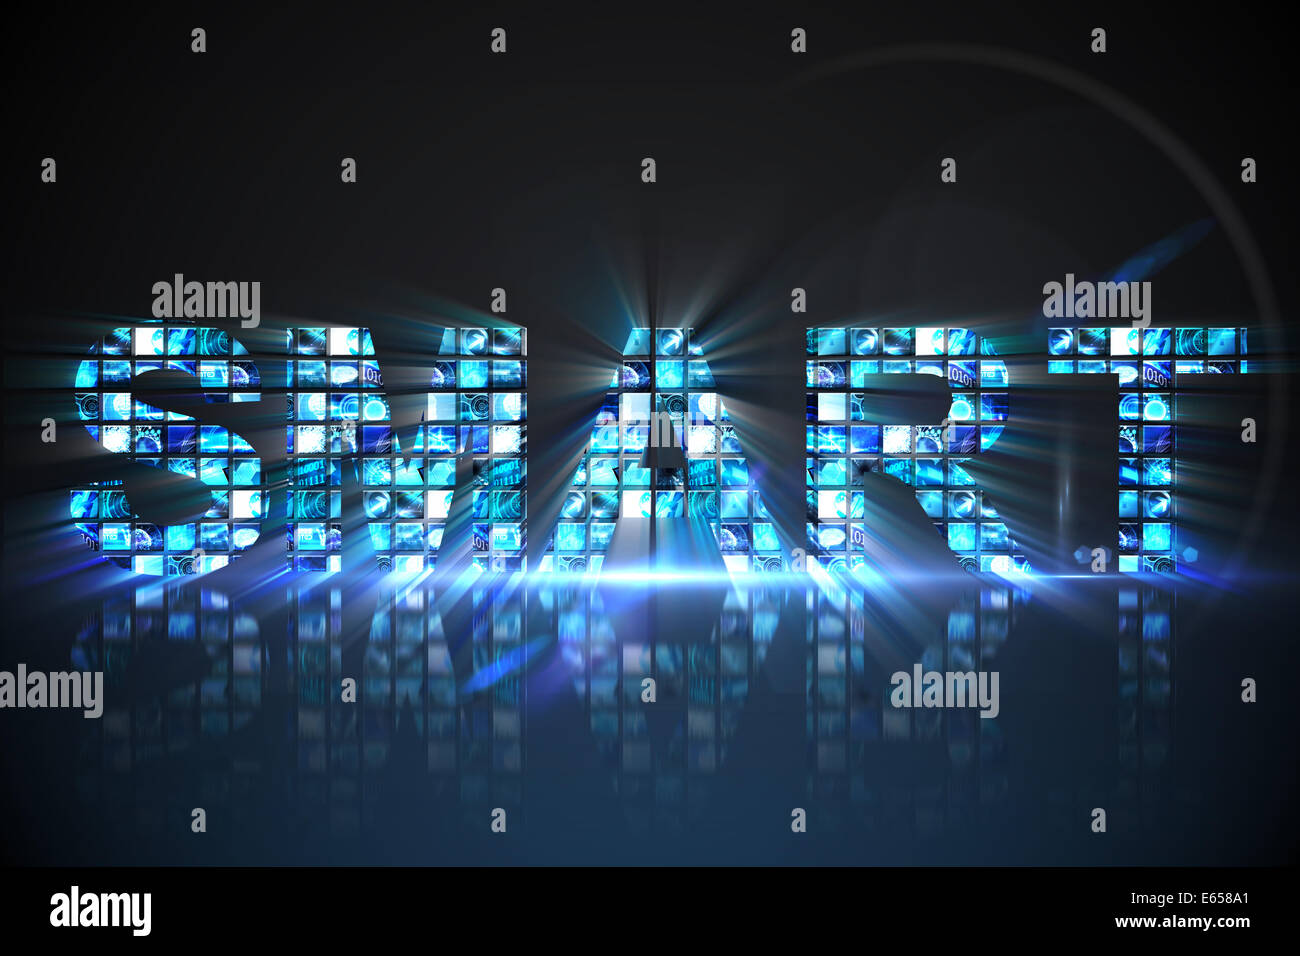 Smart made of digital screens in blue - Stock Image